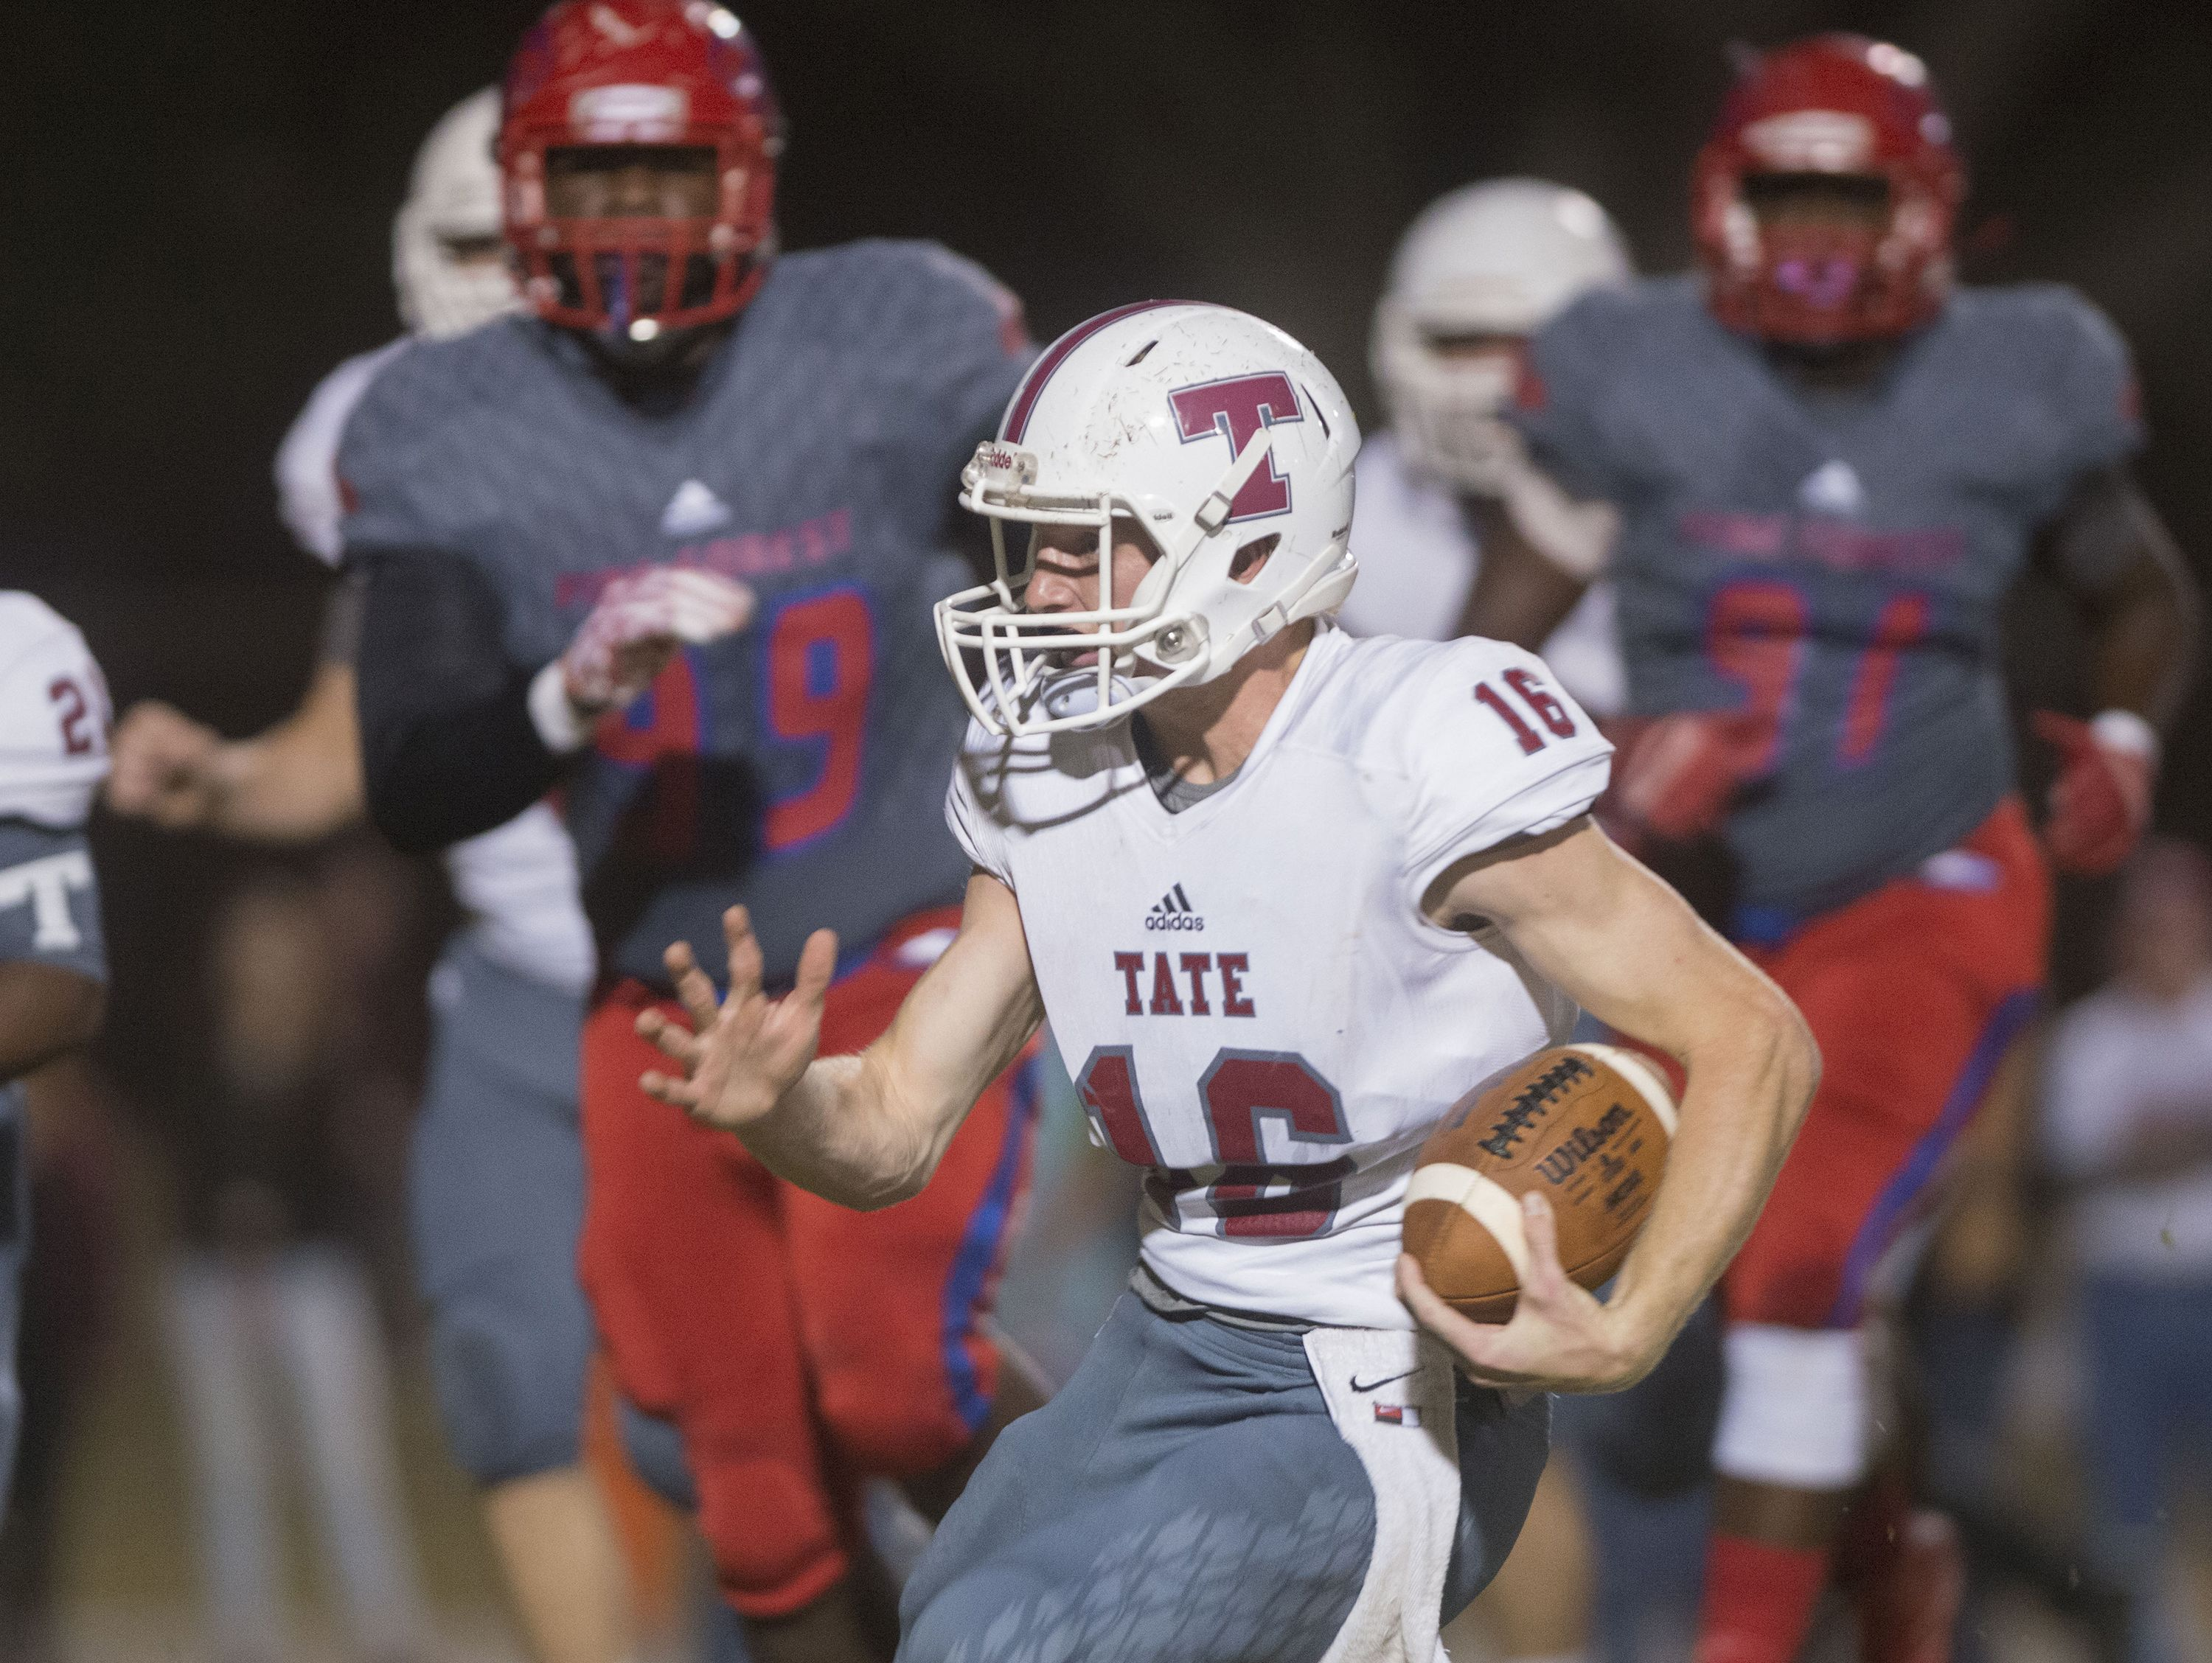 Tate High School quarterback, Jake Henry, (No.16) runs extra yards on a keeper during Friday night's district game.